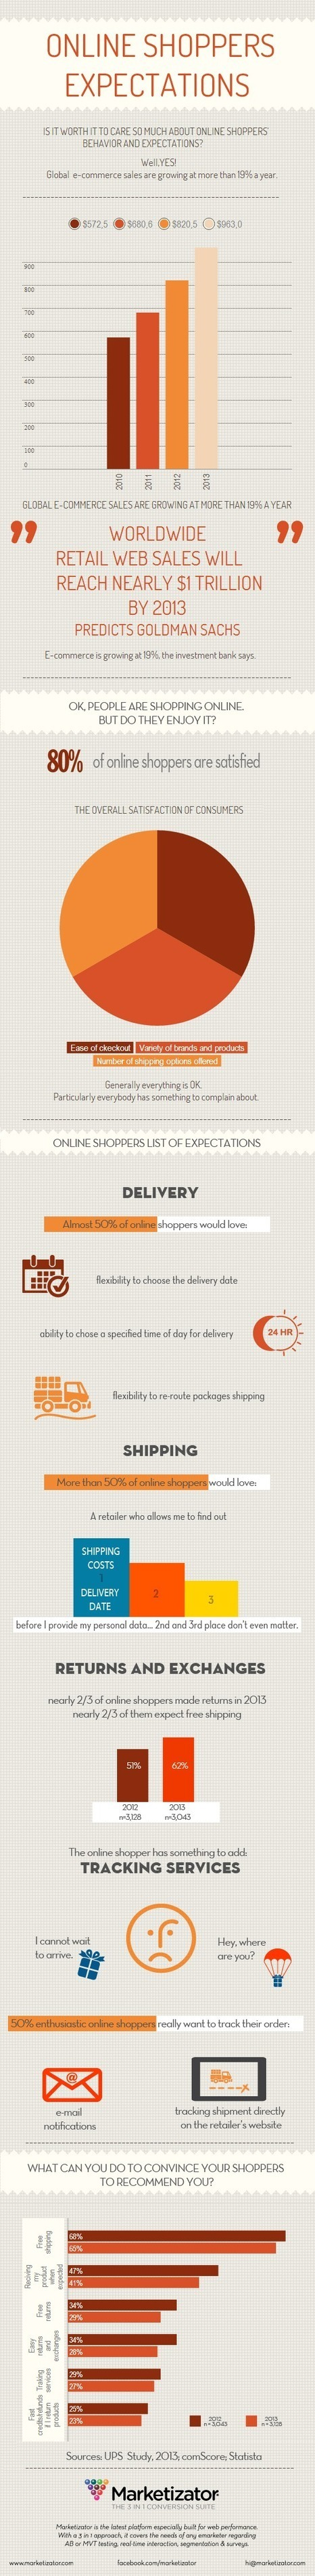 Online shoppers expectations | Digital marketing | Scoop.it